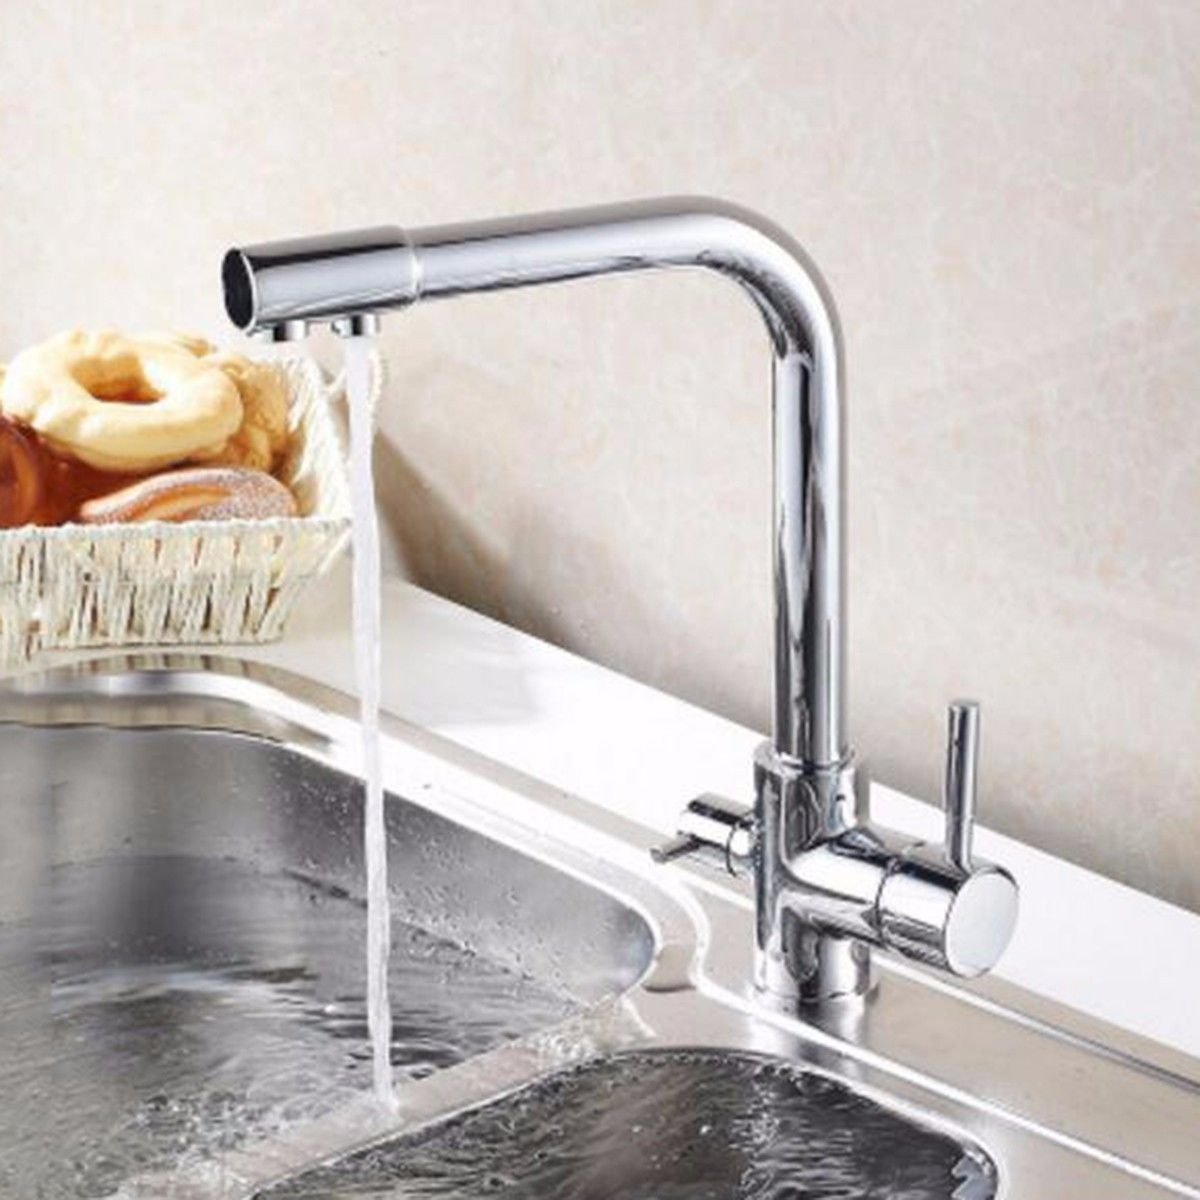 MulFaucet Hot and Cold Kitchen Water Purifier Dual use Faucet Sink Faucet redating Effluent